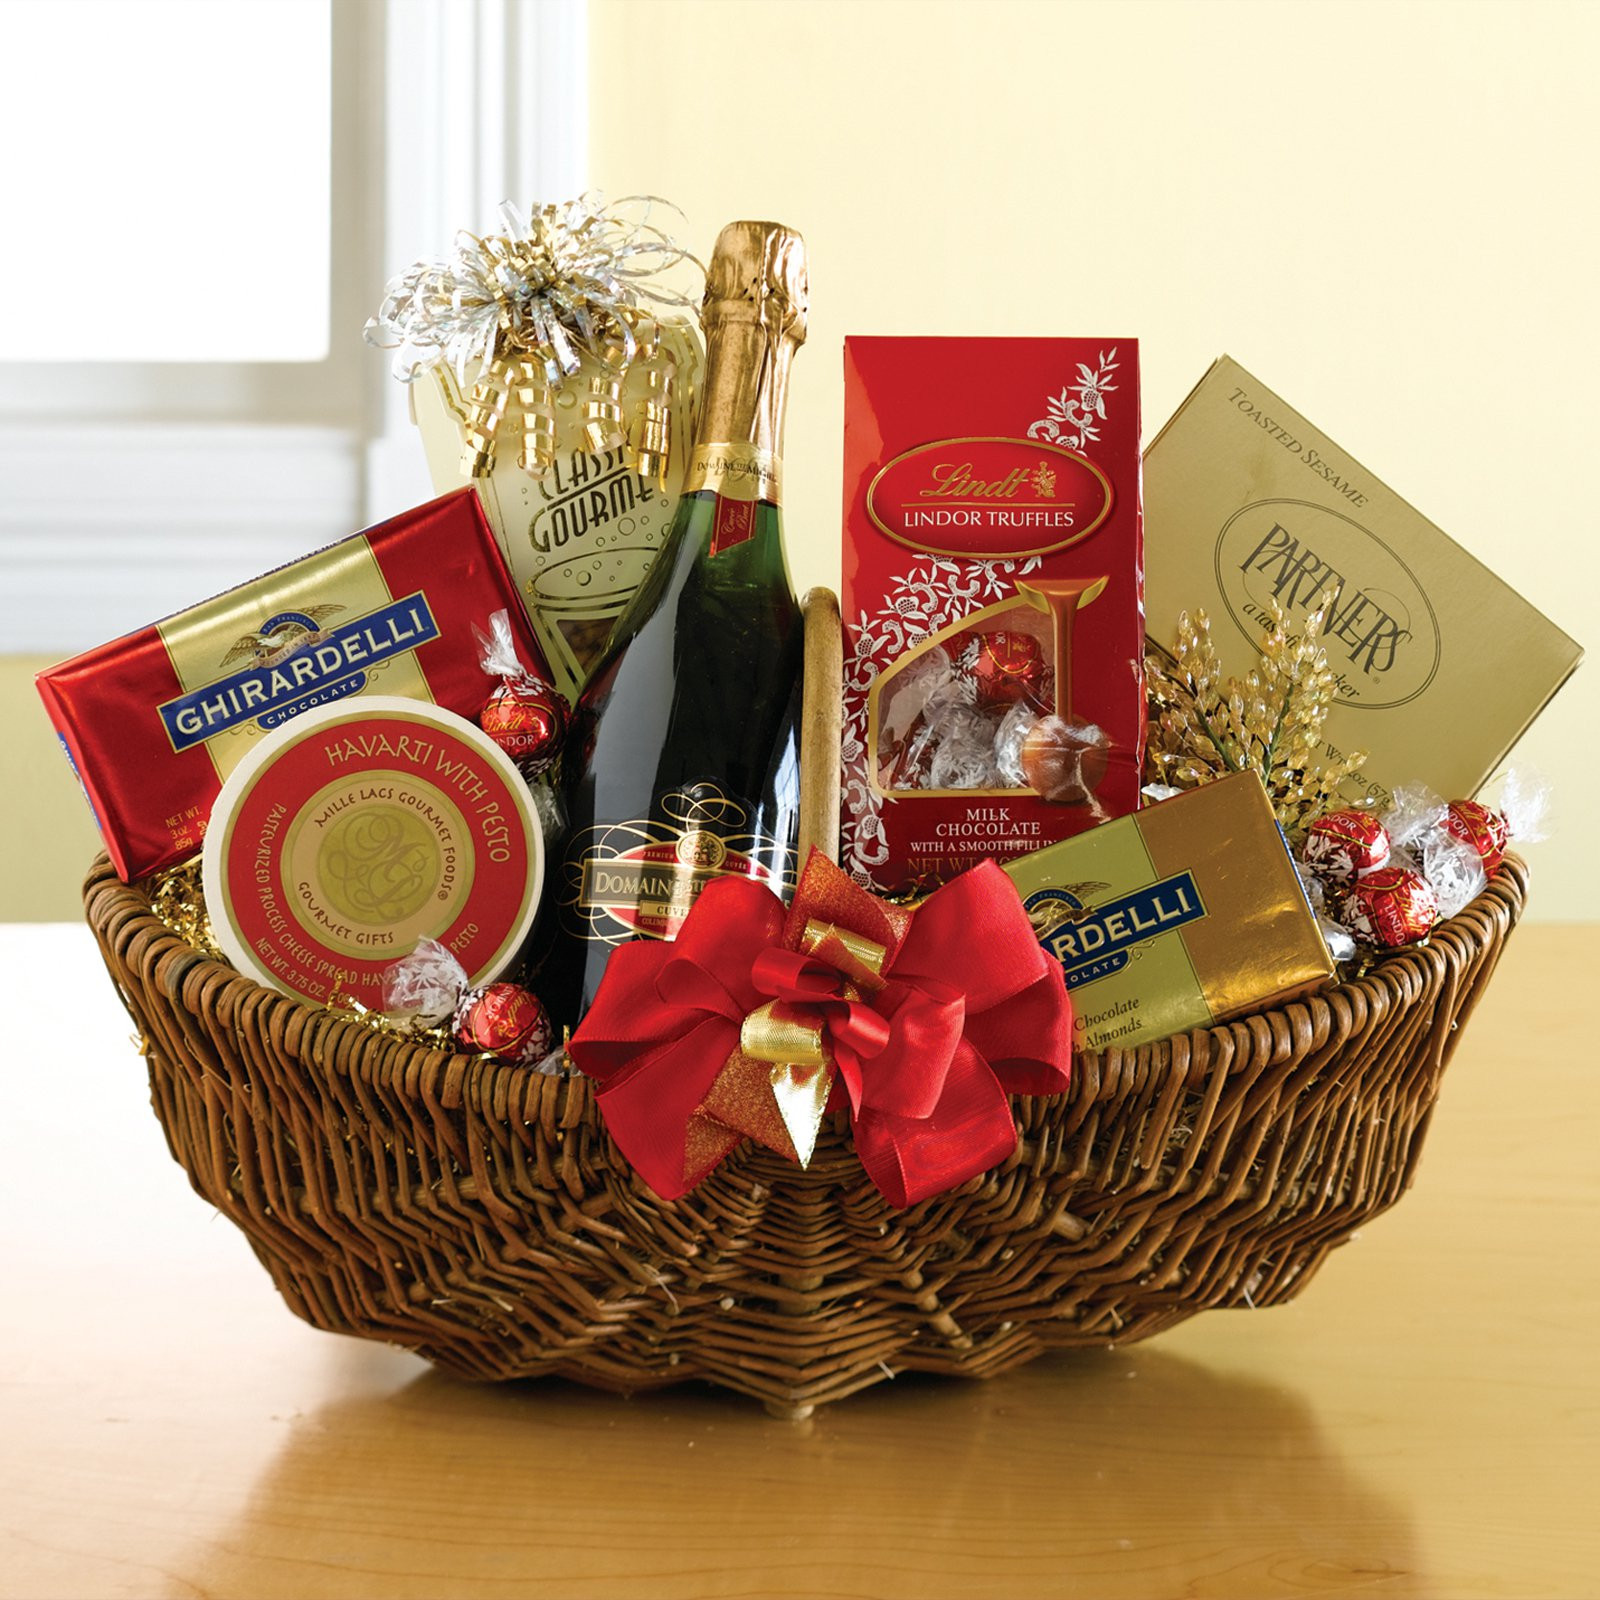 Best ideas about Wine Basket Gift Ideas . Save or Pin The Sparkler Gift Basket at Hayneedle Now.